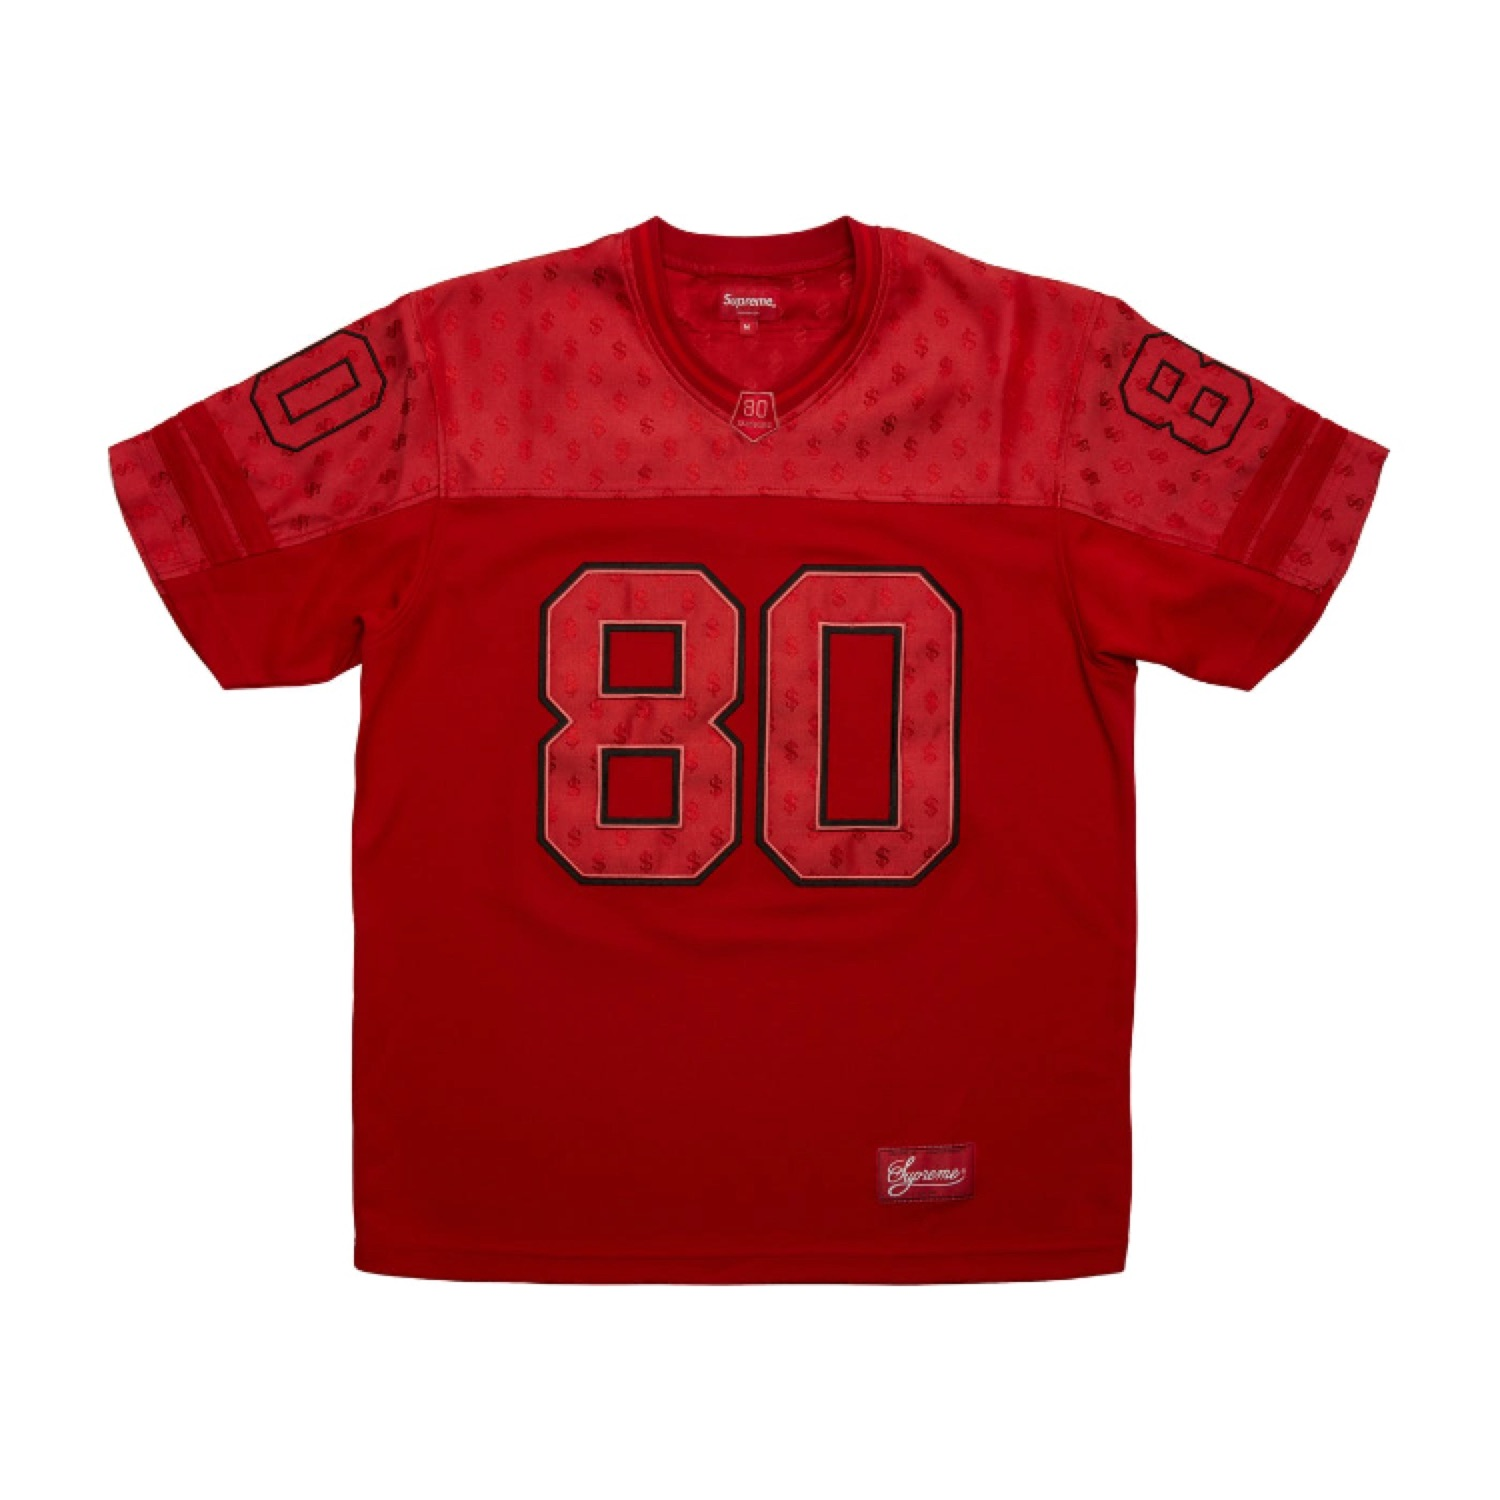 Ss18 Supreme Monogram Football Jersey Red Large